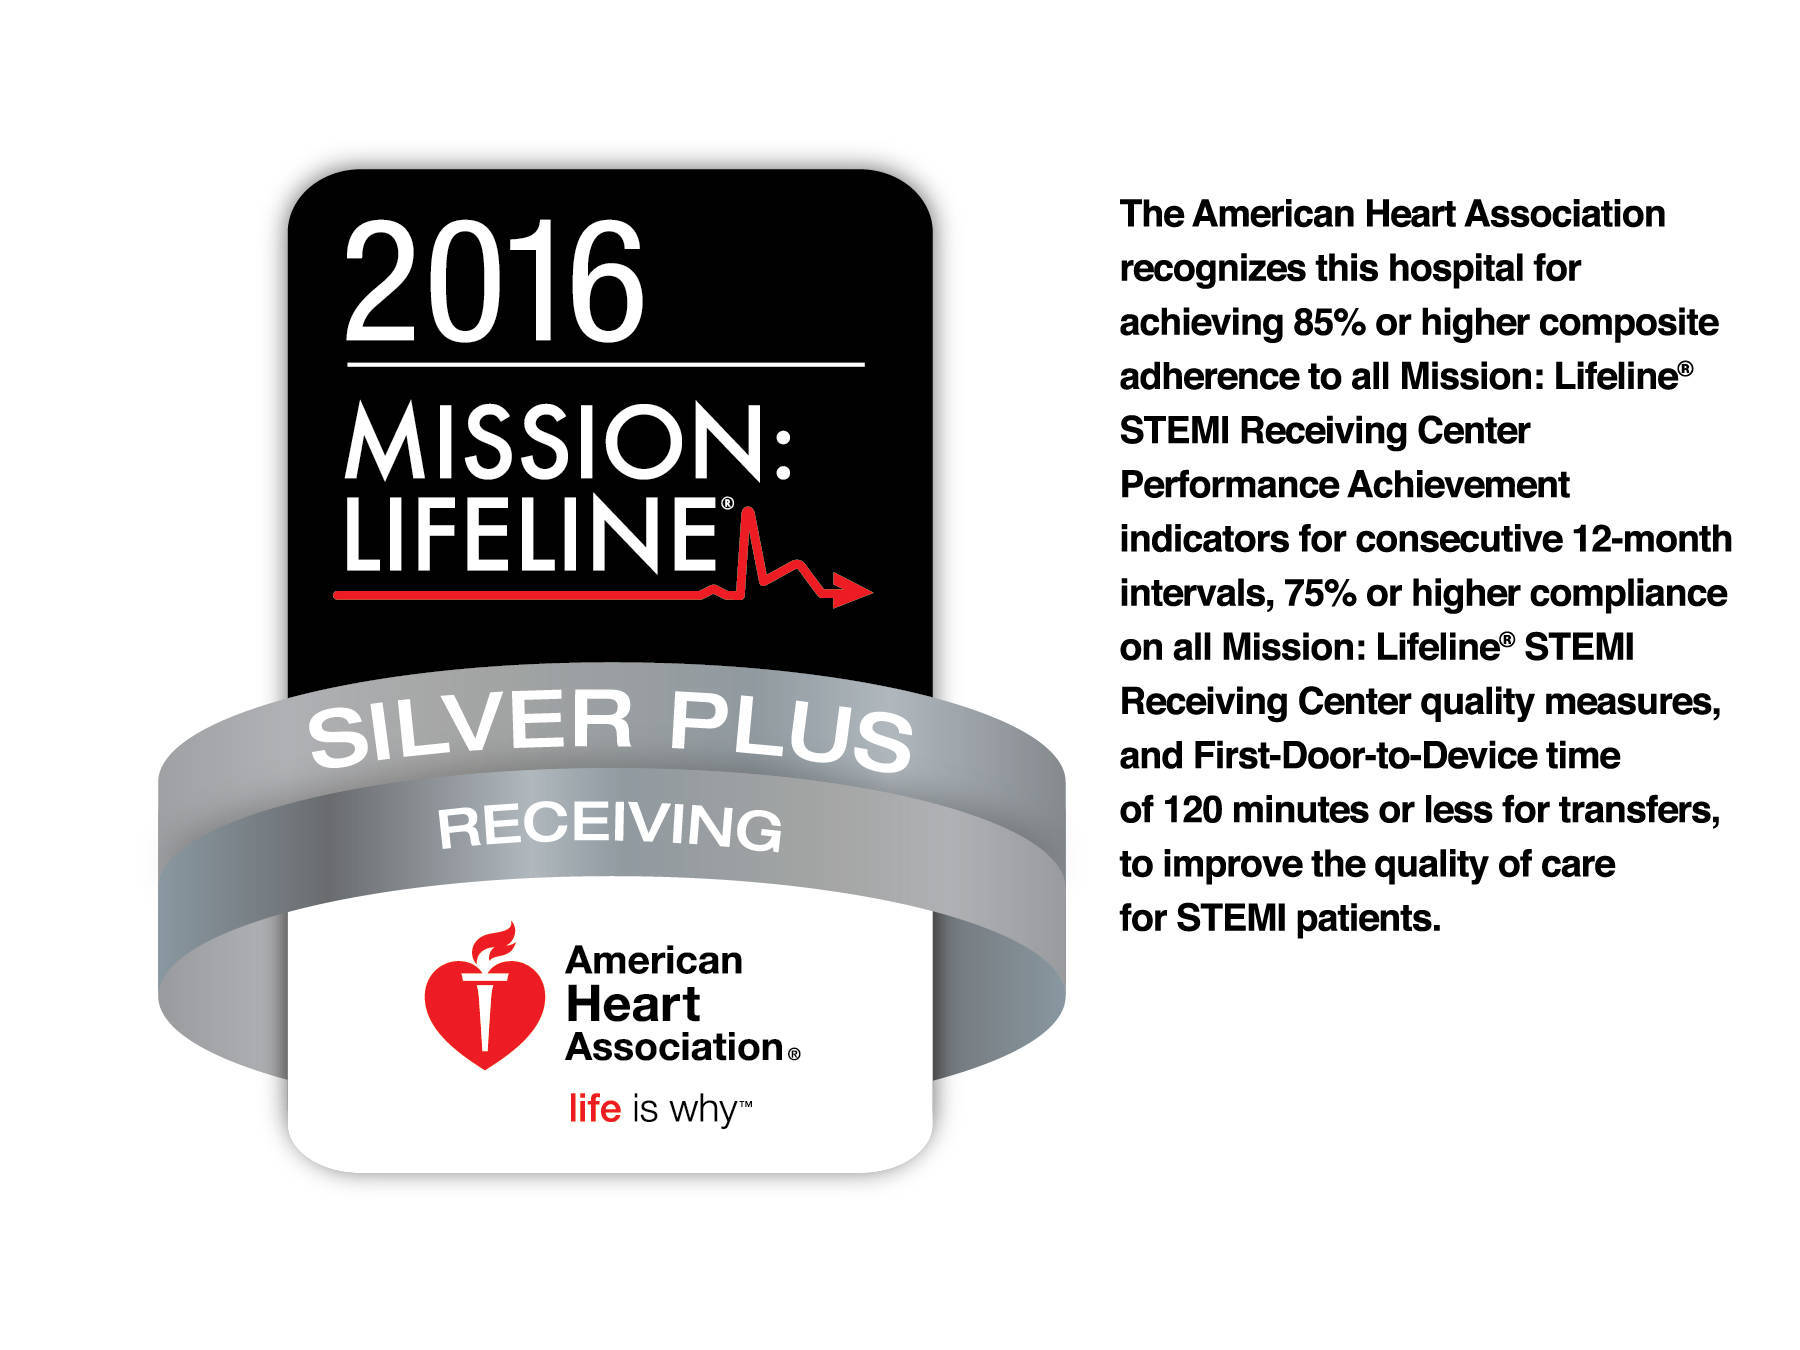 5570ee7c578c561025d2_Mission_LifeLine_Silver_Plus_Award.jpg